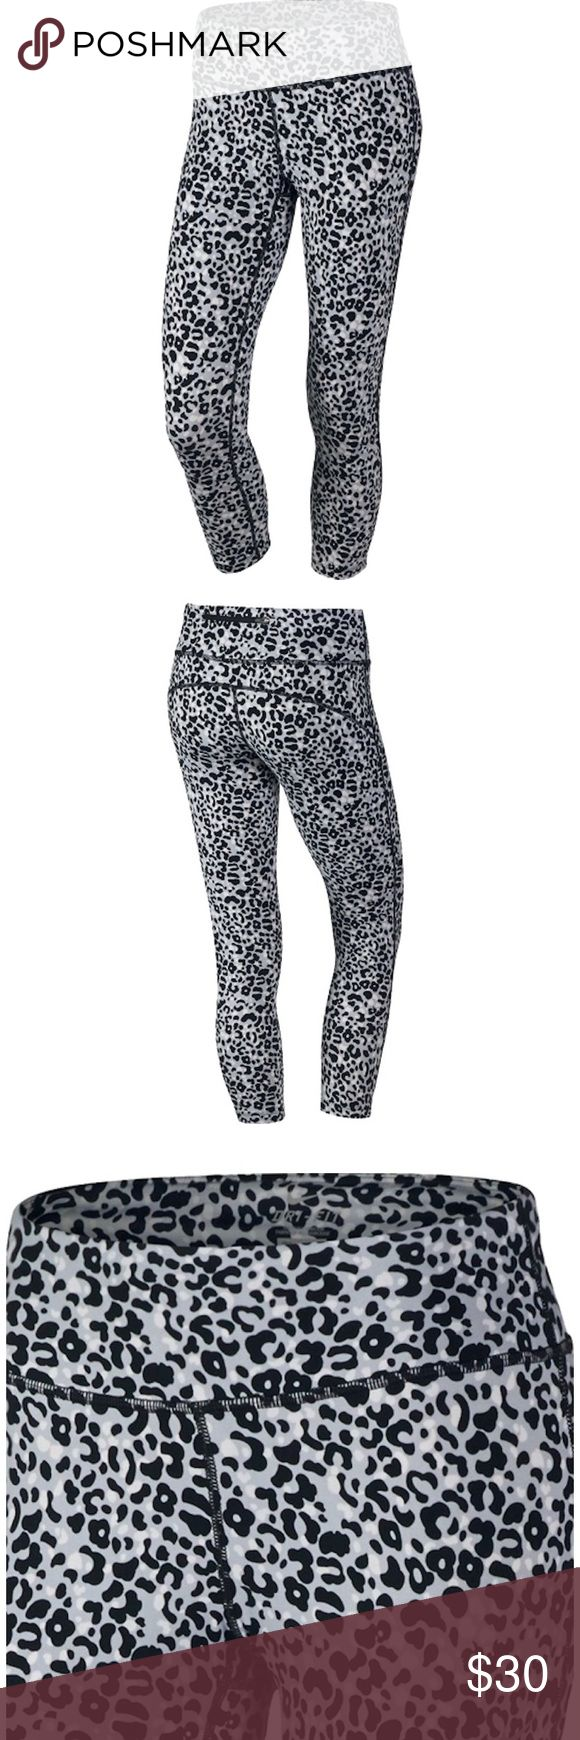 "Nike Leopard Leggings Super cute Nike leggings with leopard print, size small. Back zipper and tie waist. Cropped length. Material looks slightly ""fuzzy"" from normal wash wear. Nike Pants Leggings"